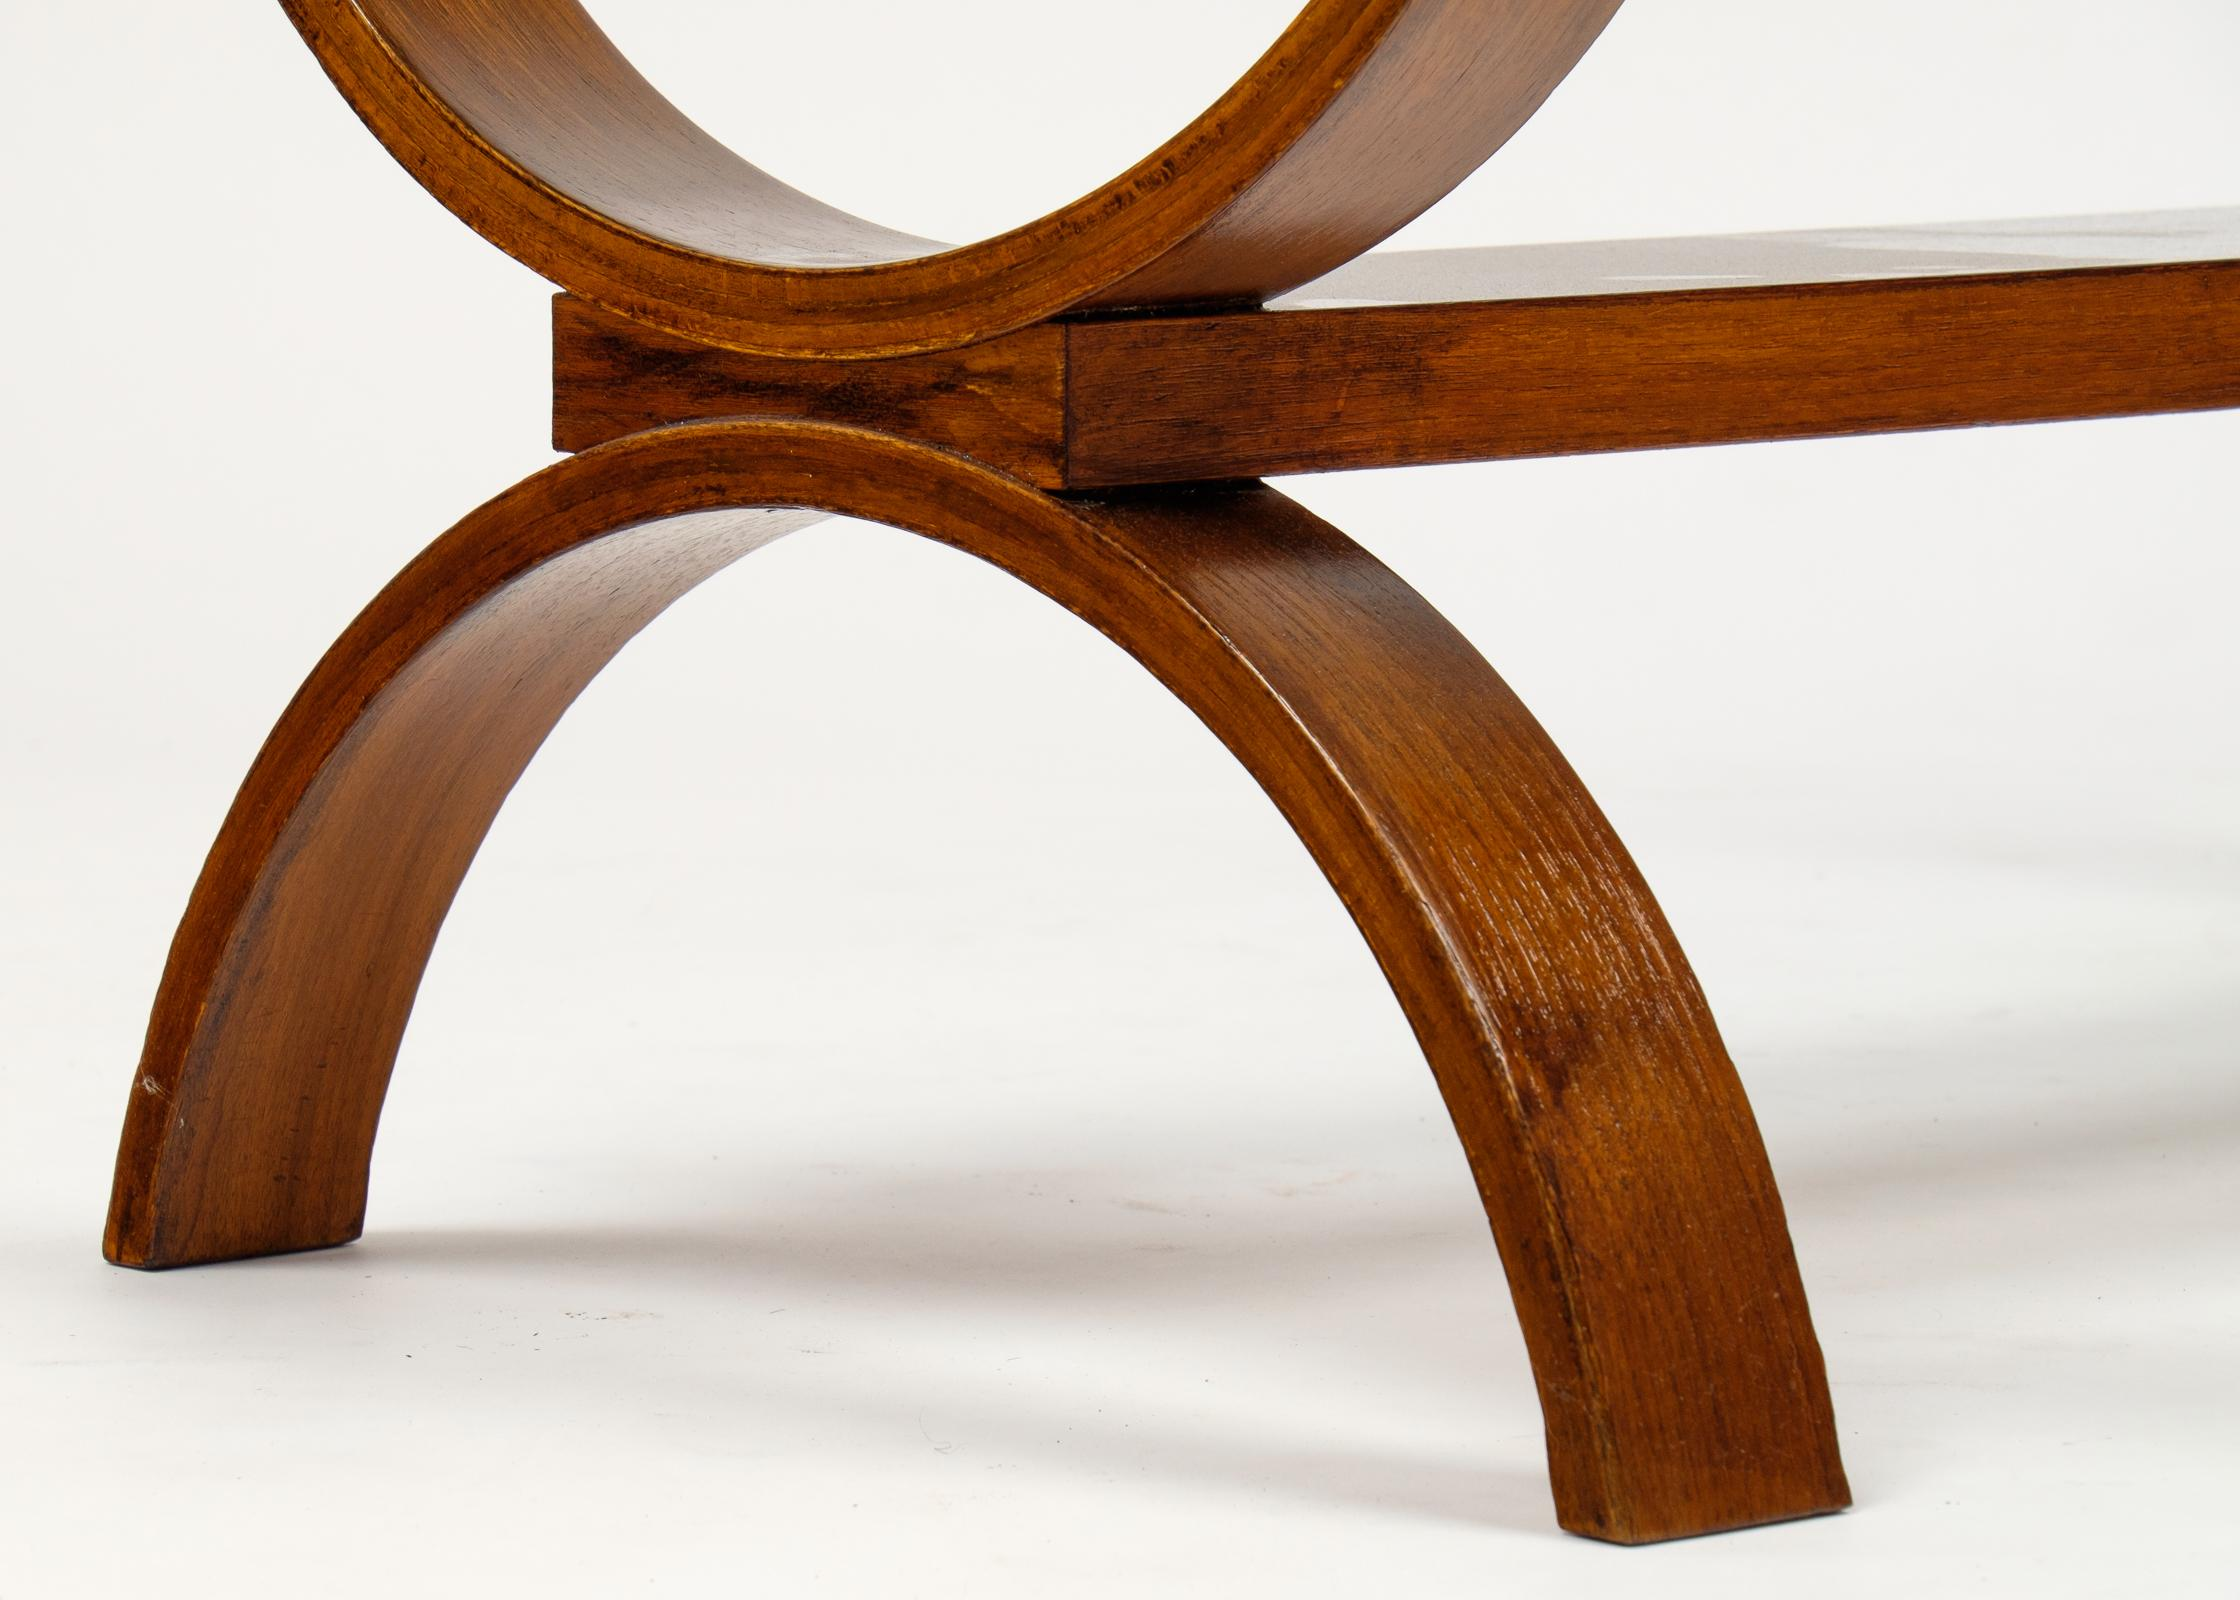 Genial Mid Century Modern Bentwood Coffee Table For Sale   Image 10 Of 10